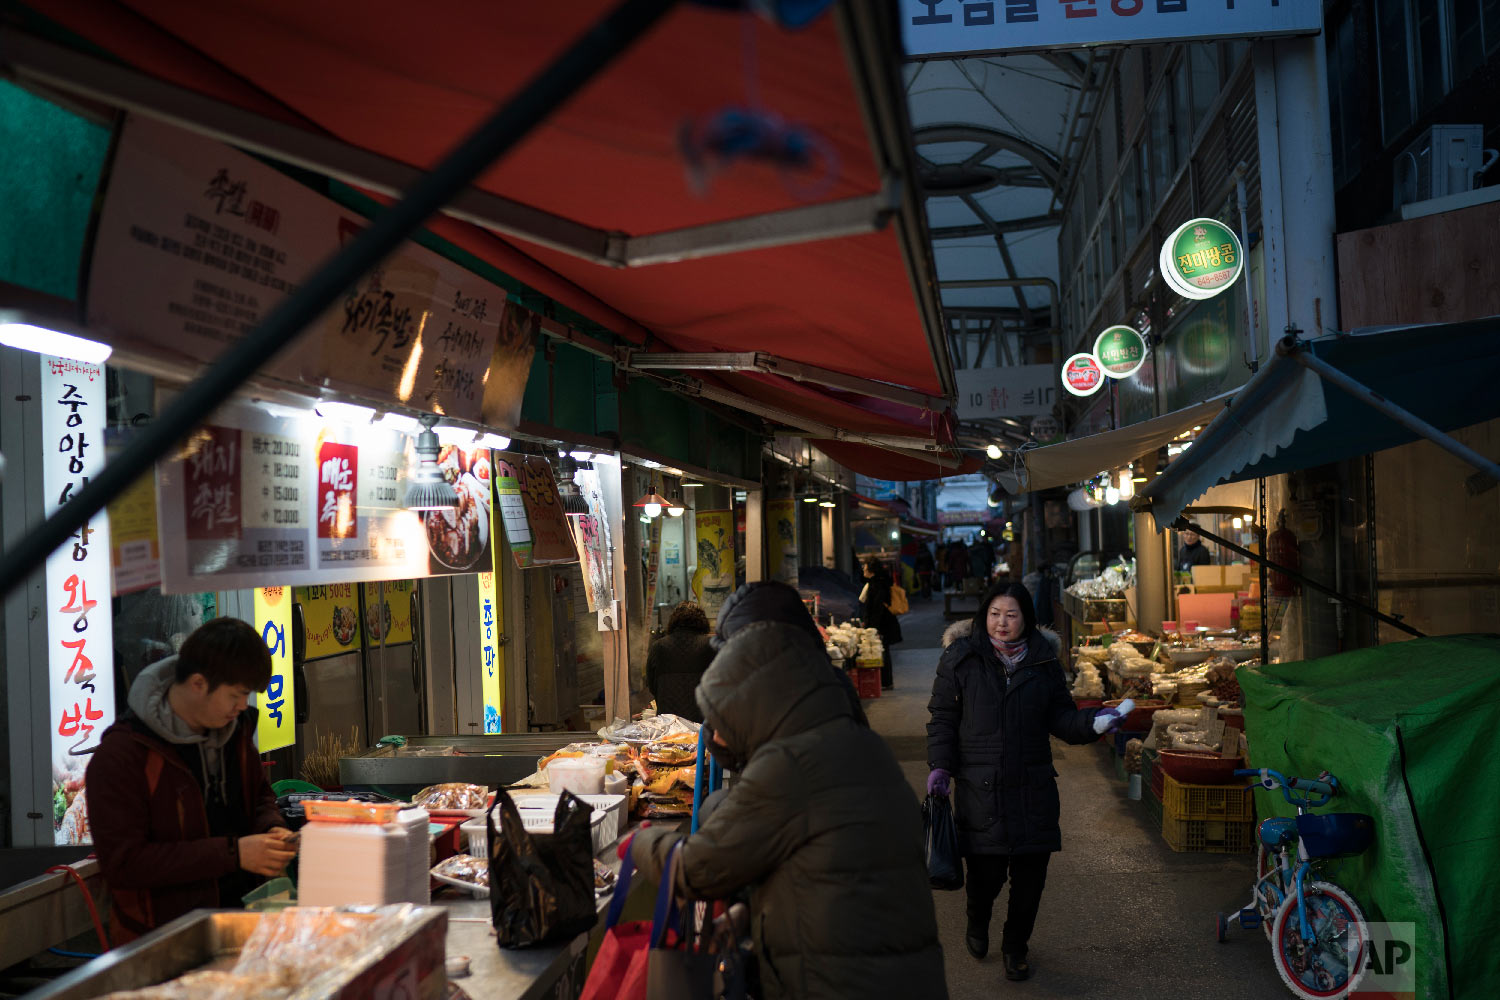 People shop at the traditional market in Gangneung, South Korea, Tuesday, Feb. 13, 2018. (AP Photo/Felipe Dana)